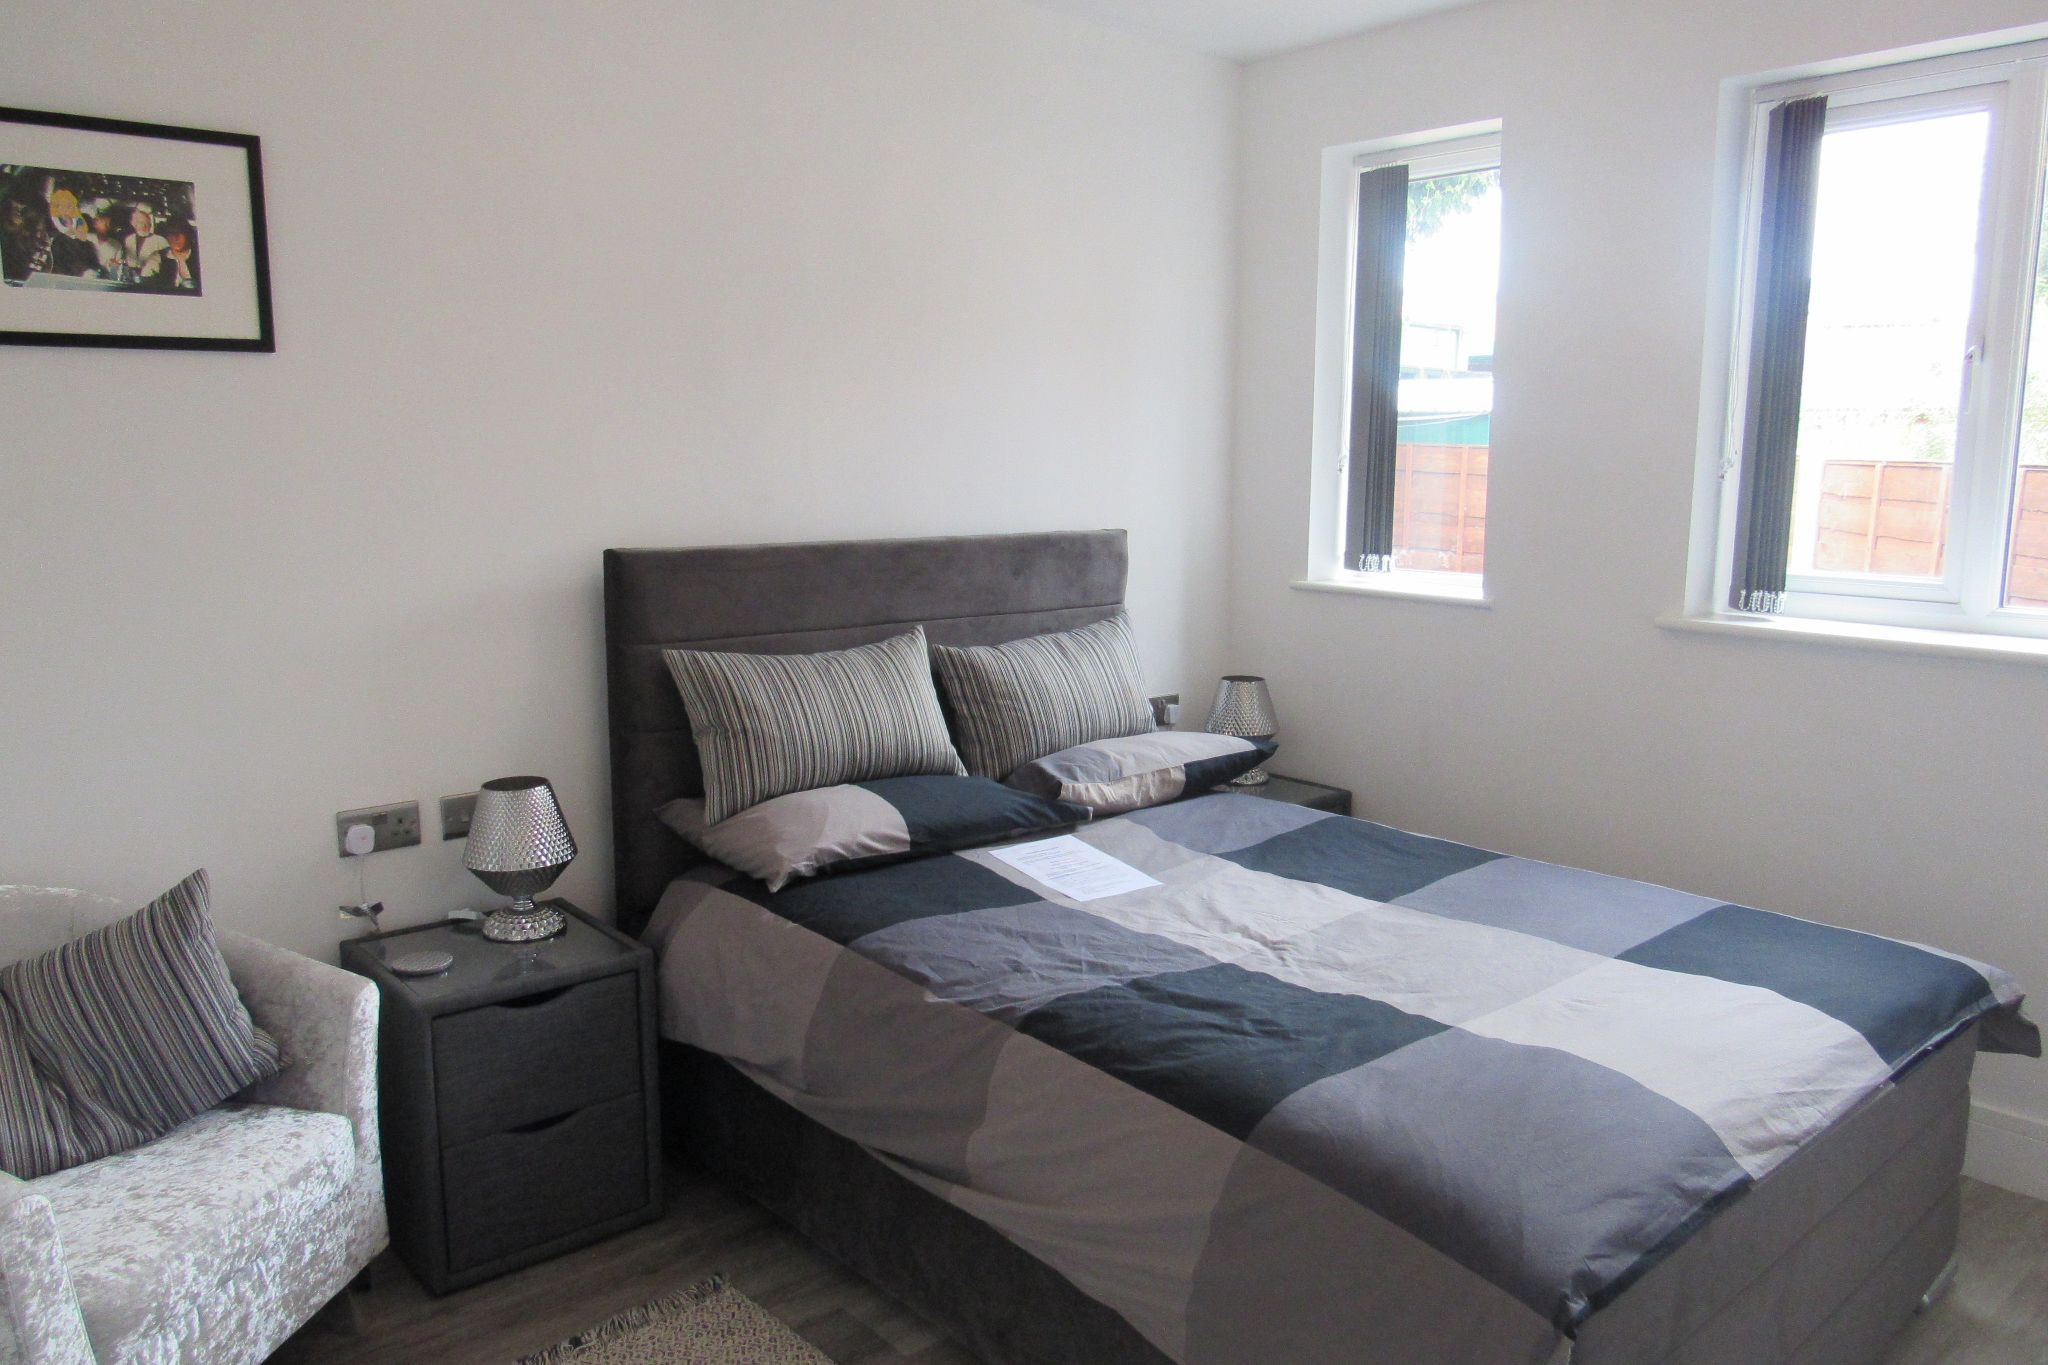 4 bedroom end terraced house SSTC in Manchester - Photograph 4.